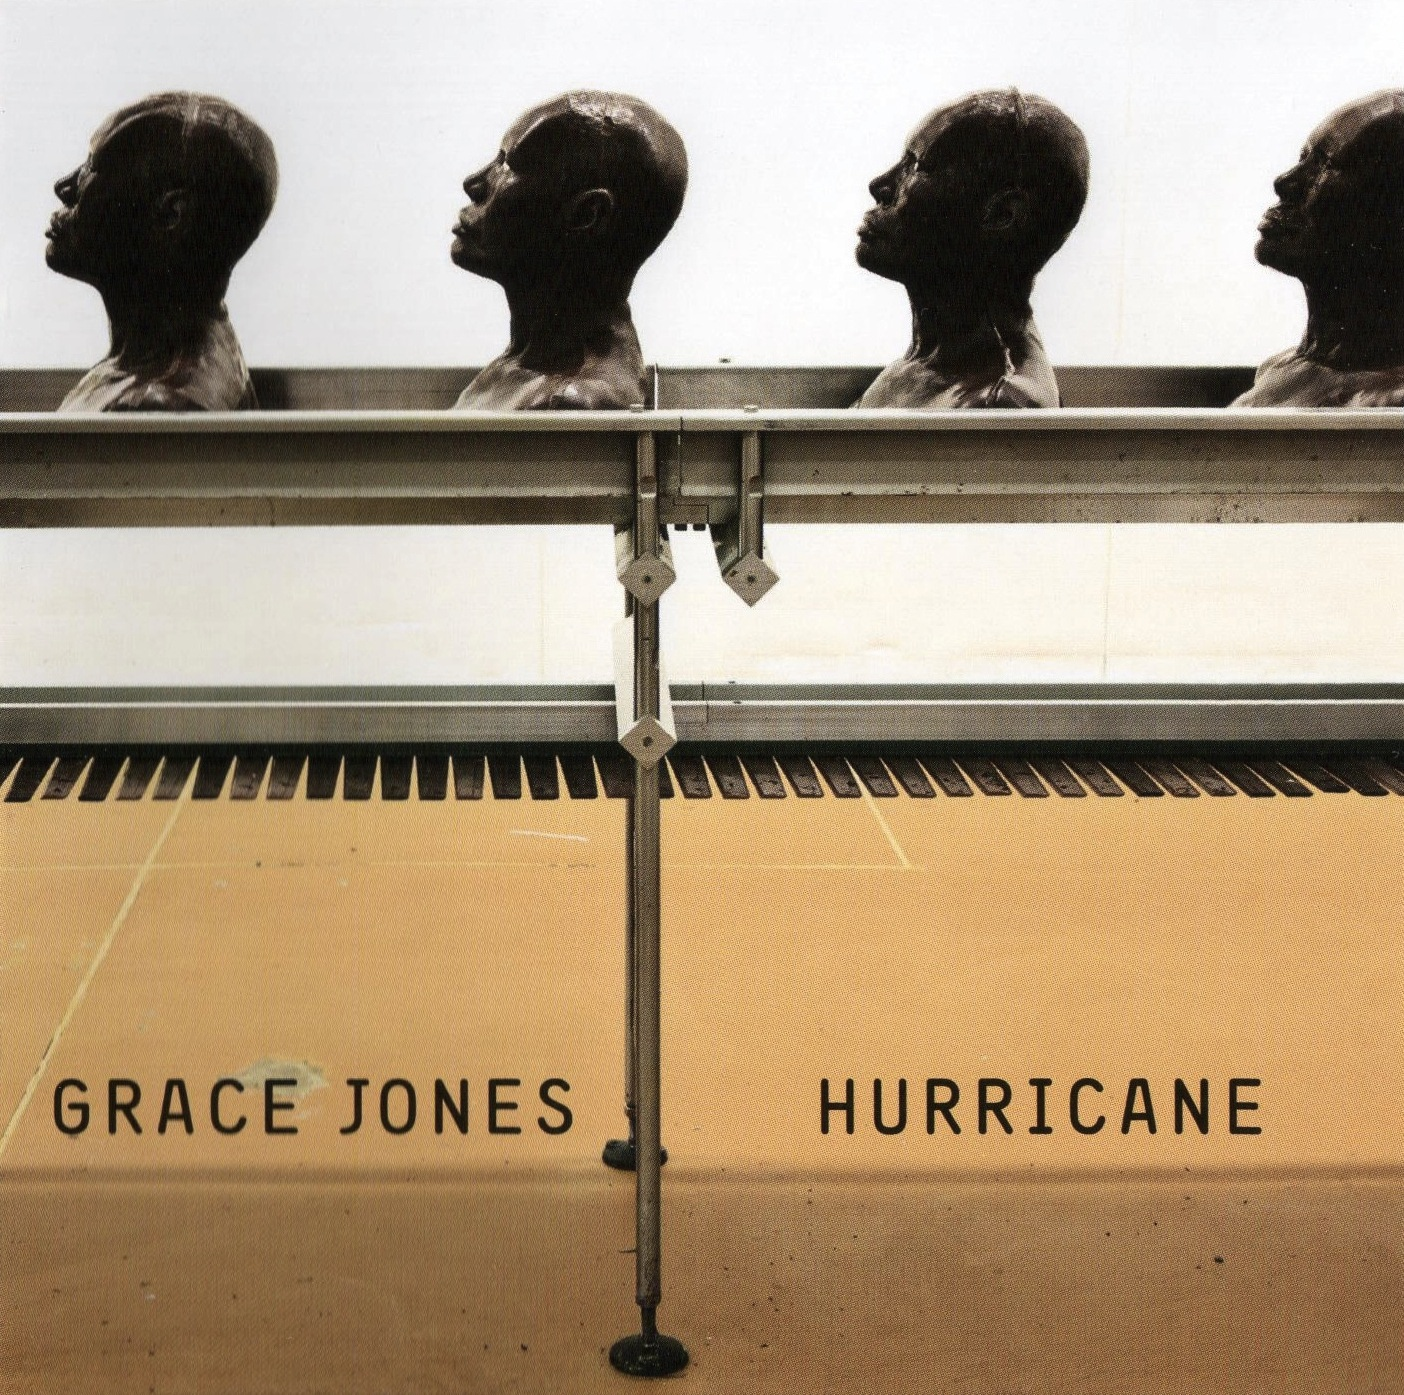 Grace Jones, Hurricane